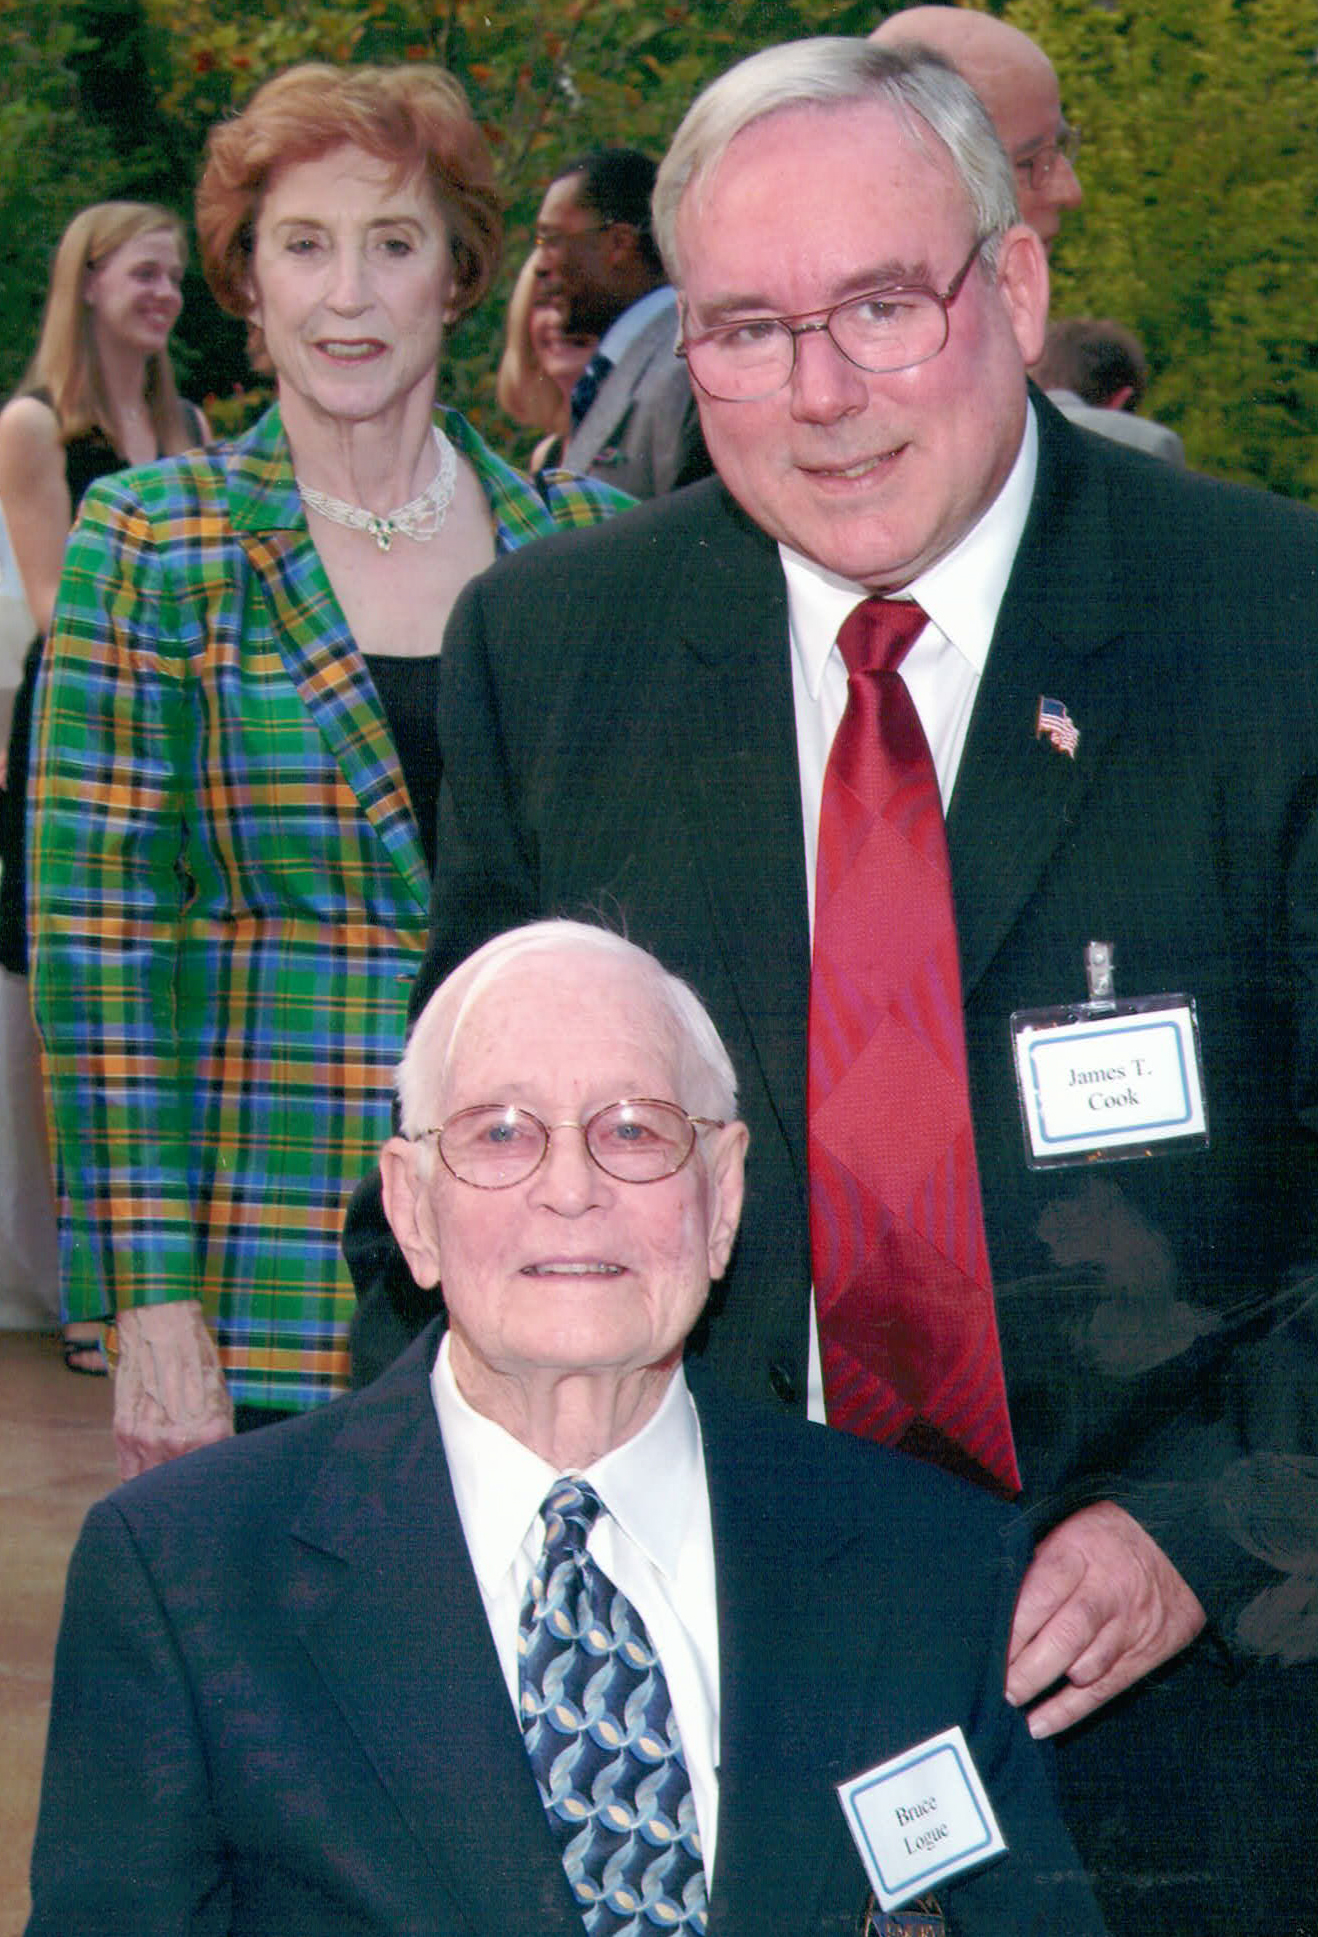 Bruce Logue, MD with James Cook, III, MD